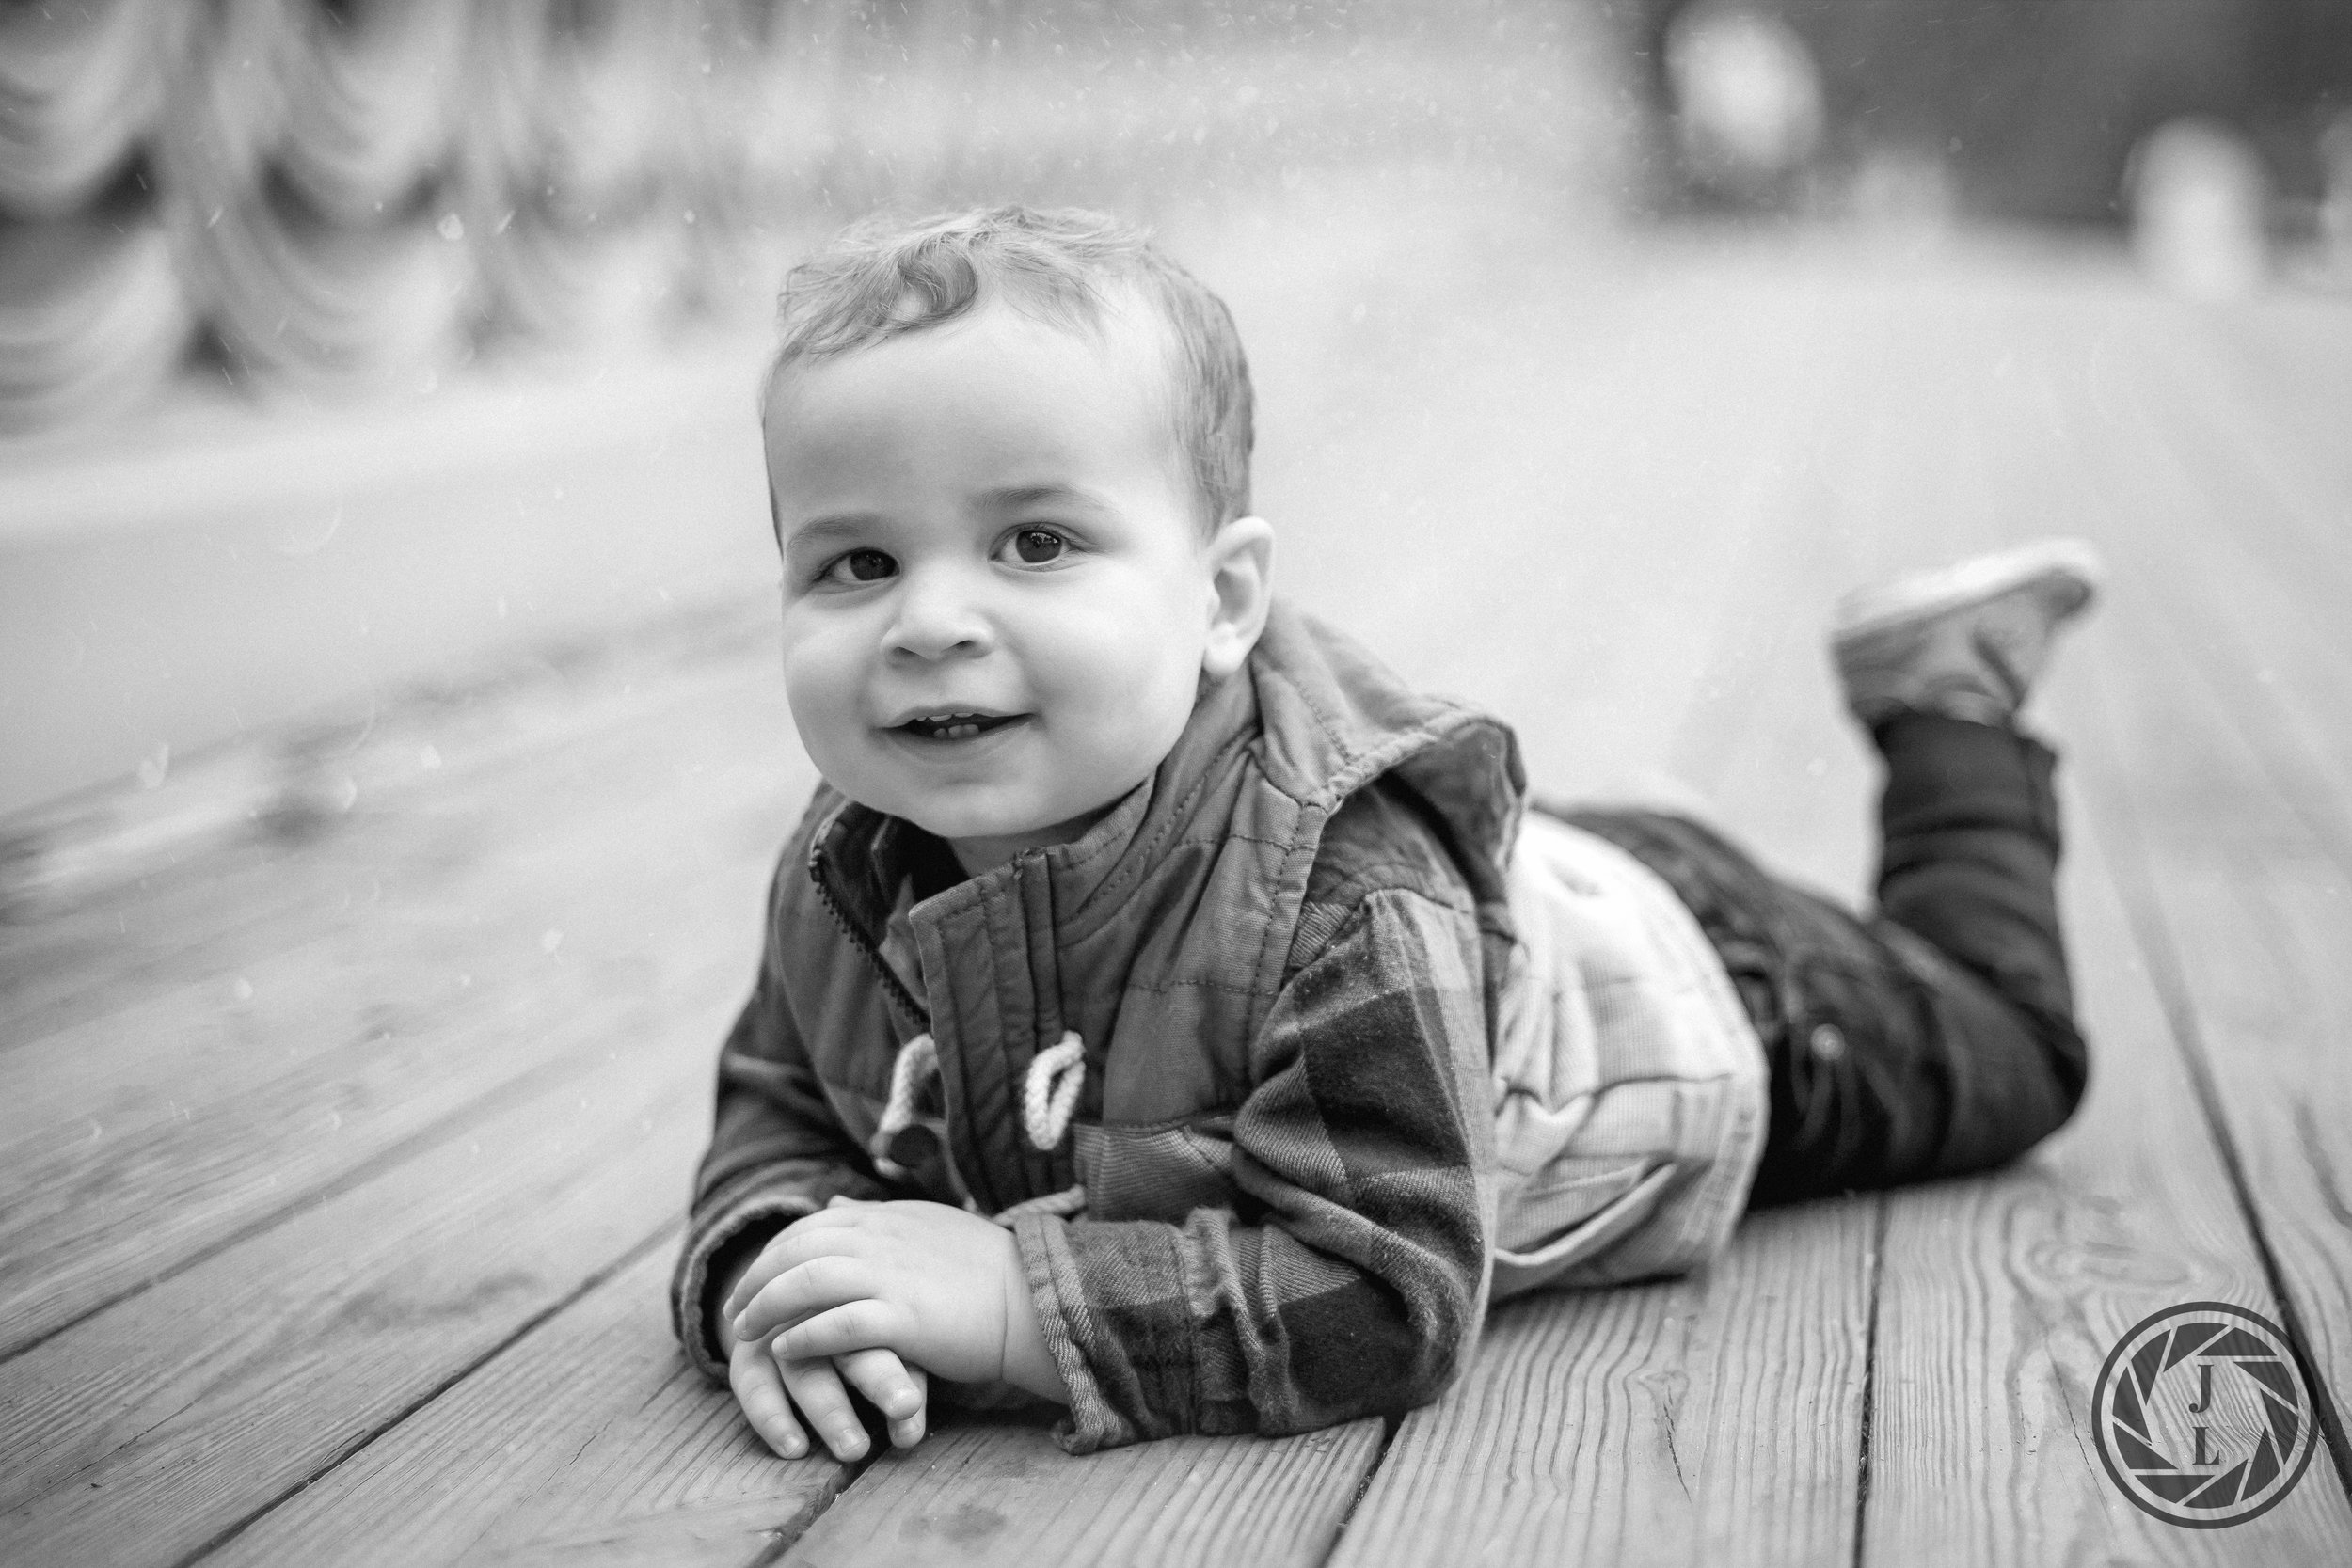 A little boy smiling and posing on his belly with his feet in the air